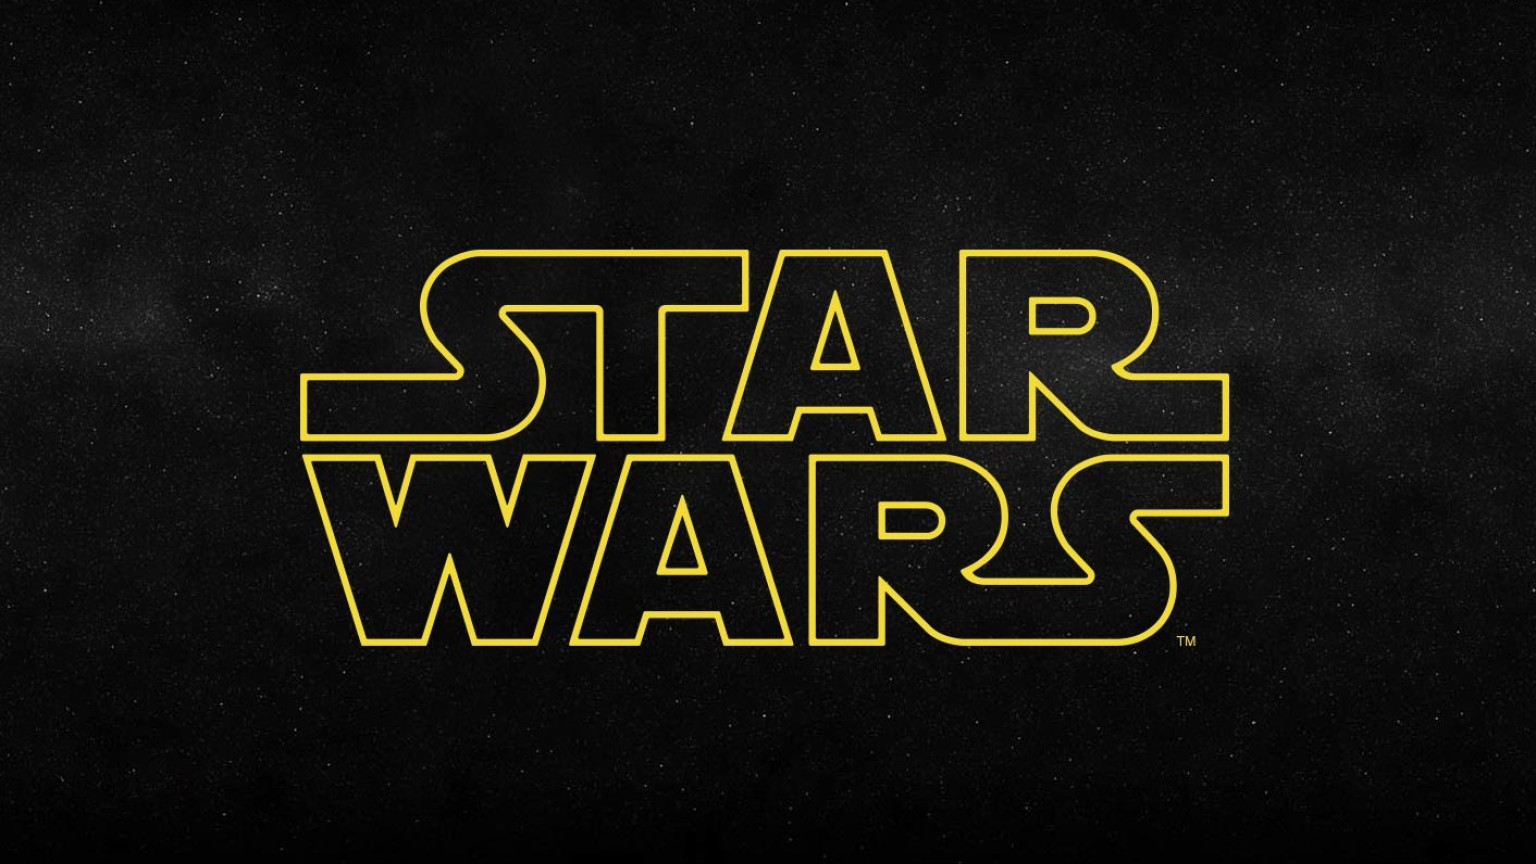 """Star Wars"" será disponibilizado em formato digital para download"